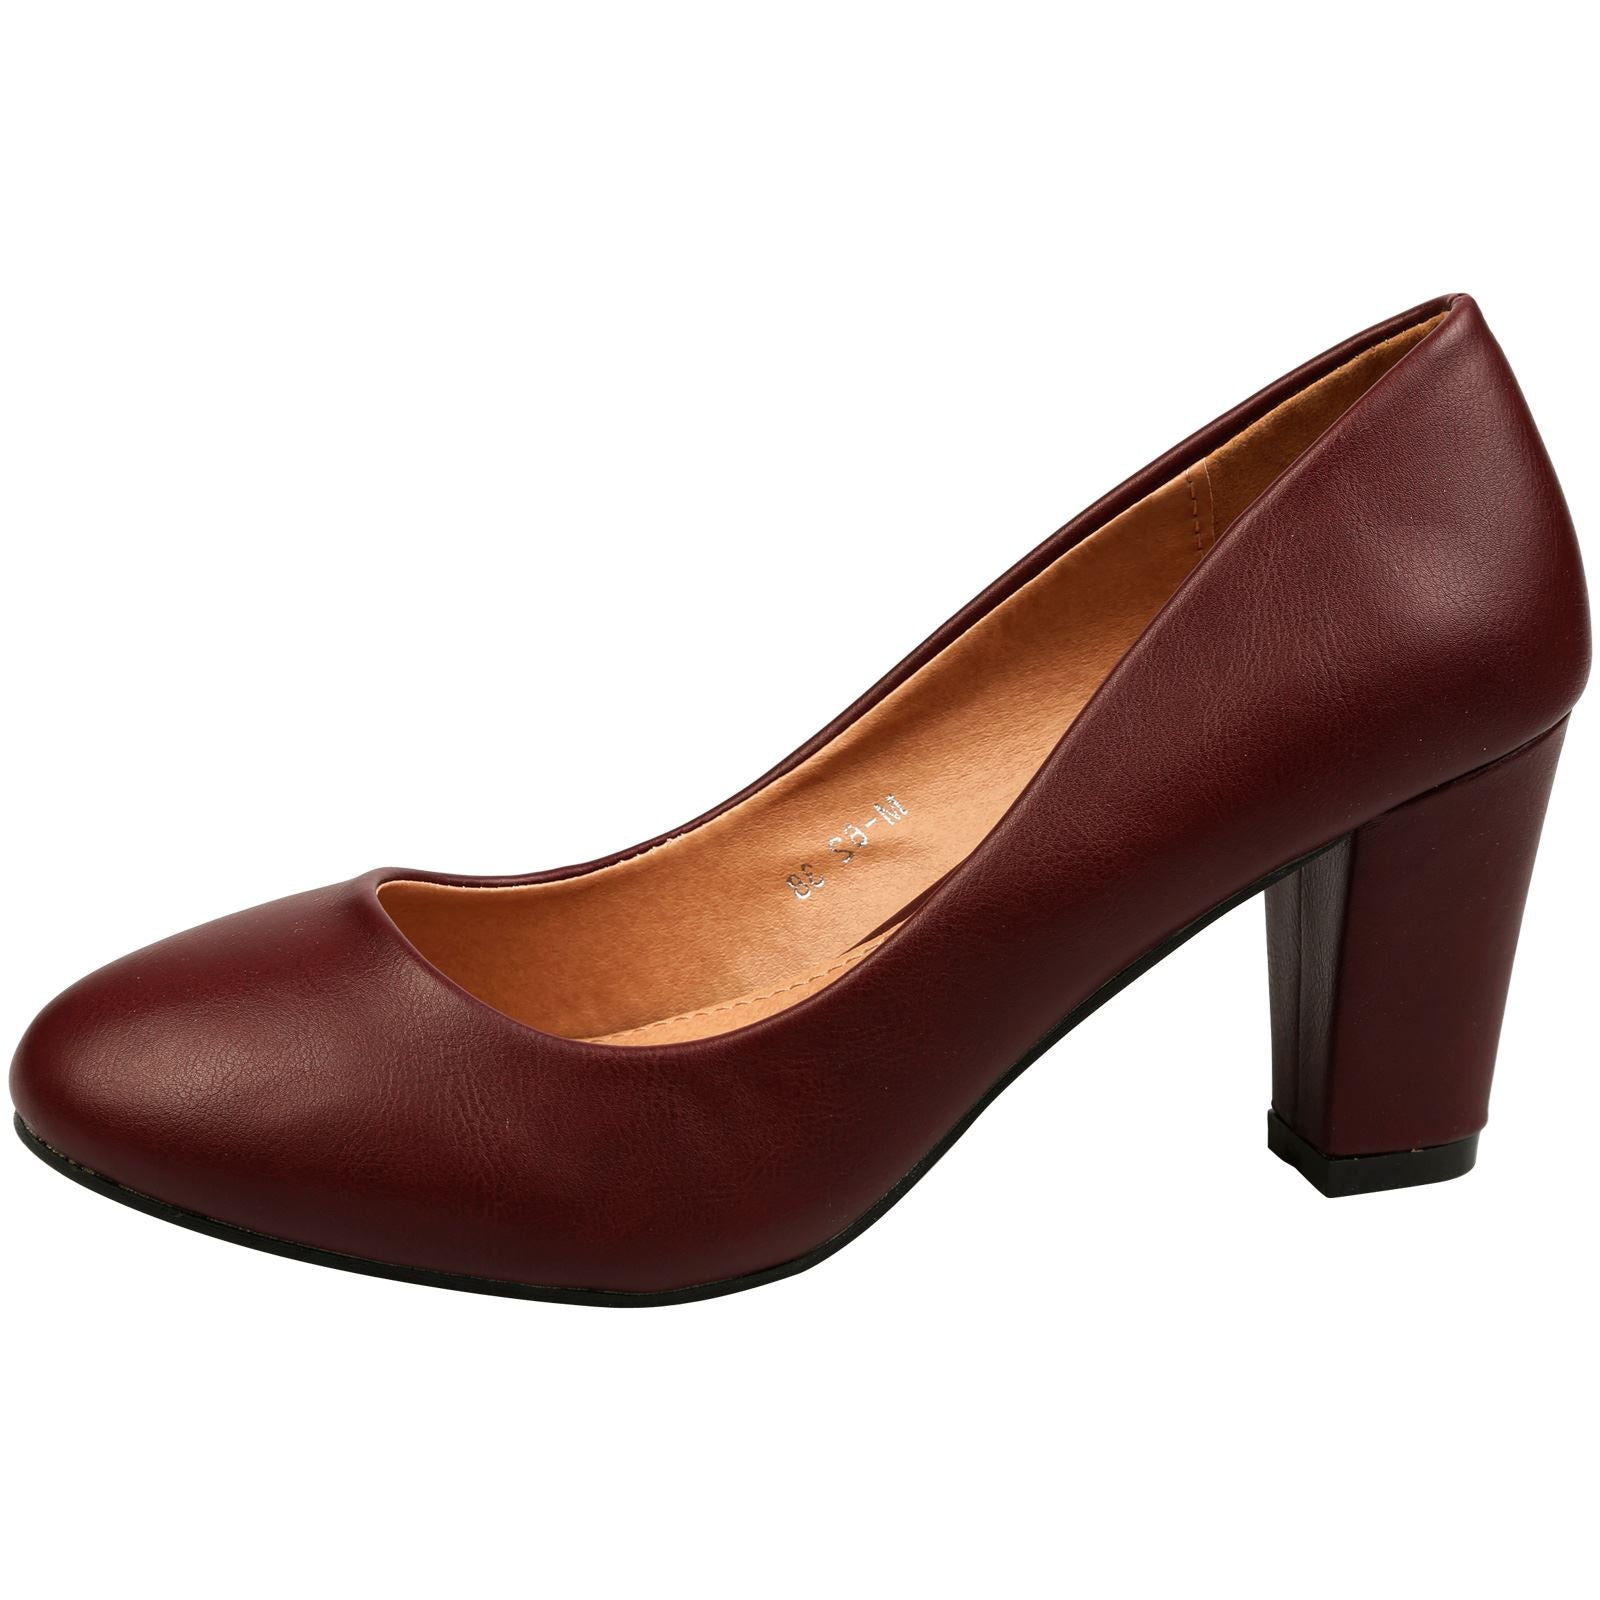 Reeva Block Heel Court Shoes in Wine Faux Leather